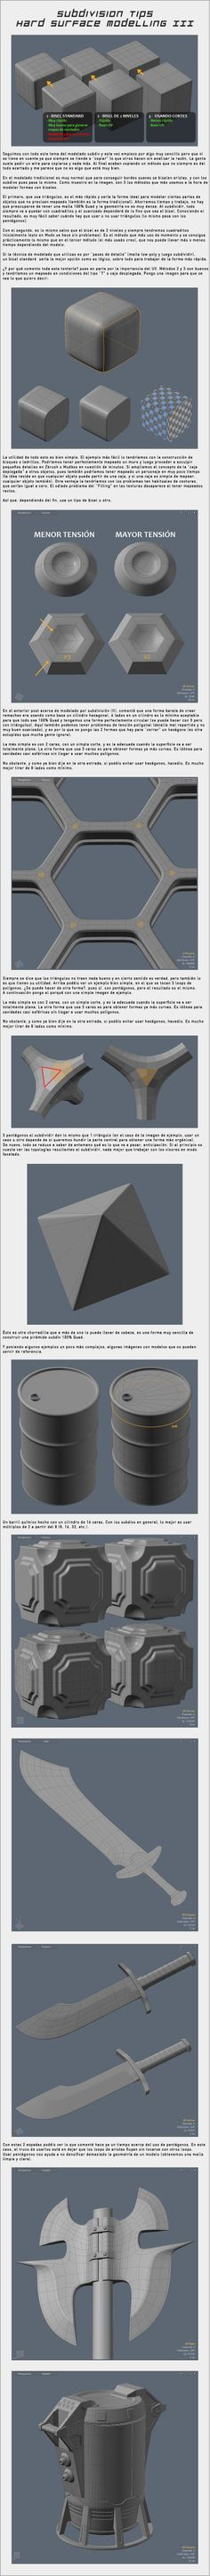 Subdivision Tips - Hard-Surface Modelling III by WhiteBlaizer